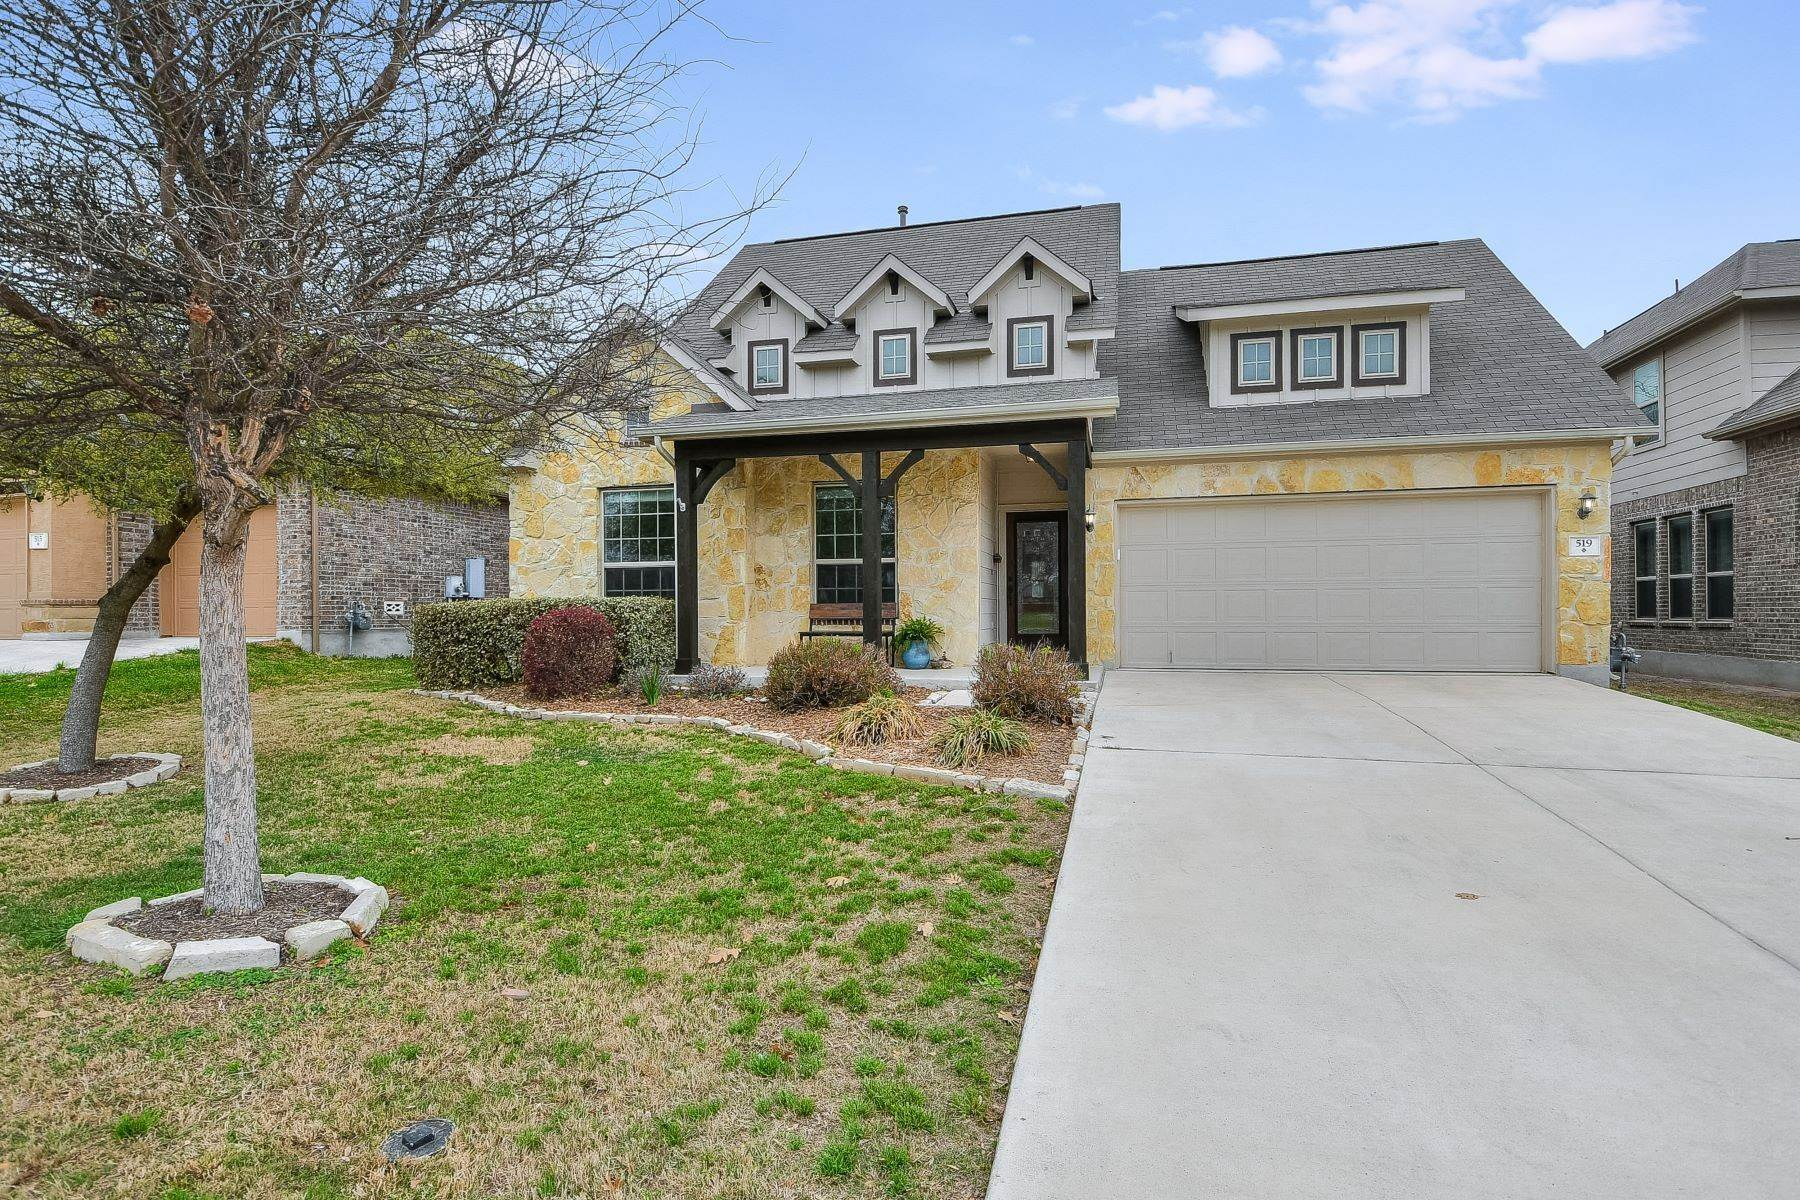 Single Family Homes for Sale at Spacious Home For Entertaining 519 Pecan Forest New Braunfels, Texas 78130 United States